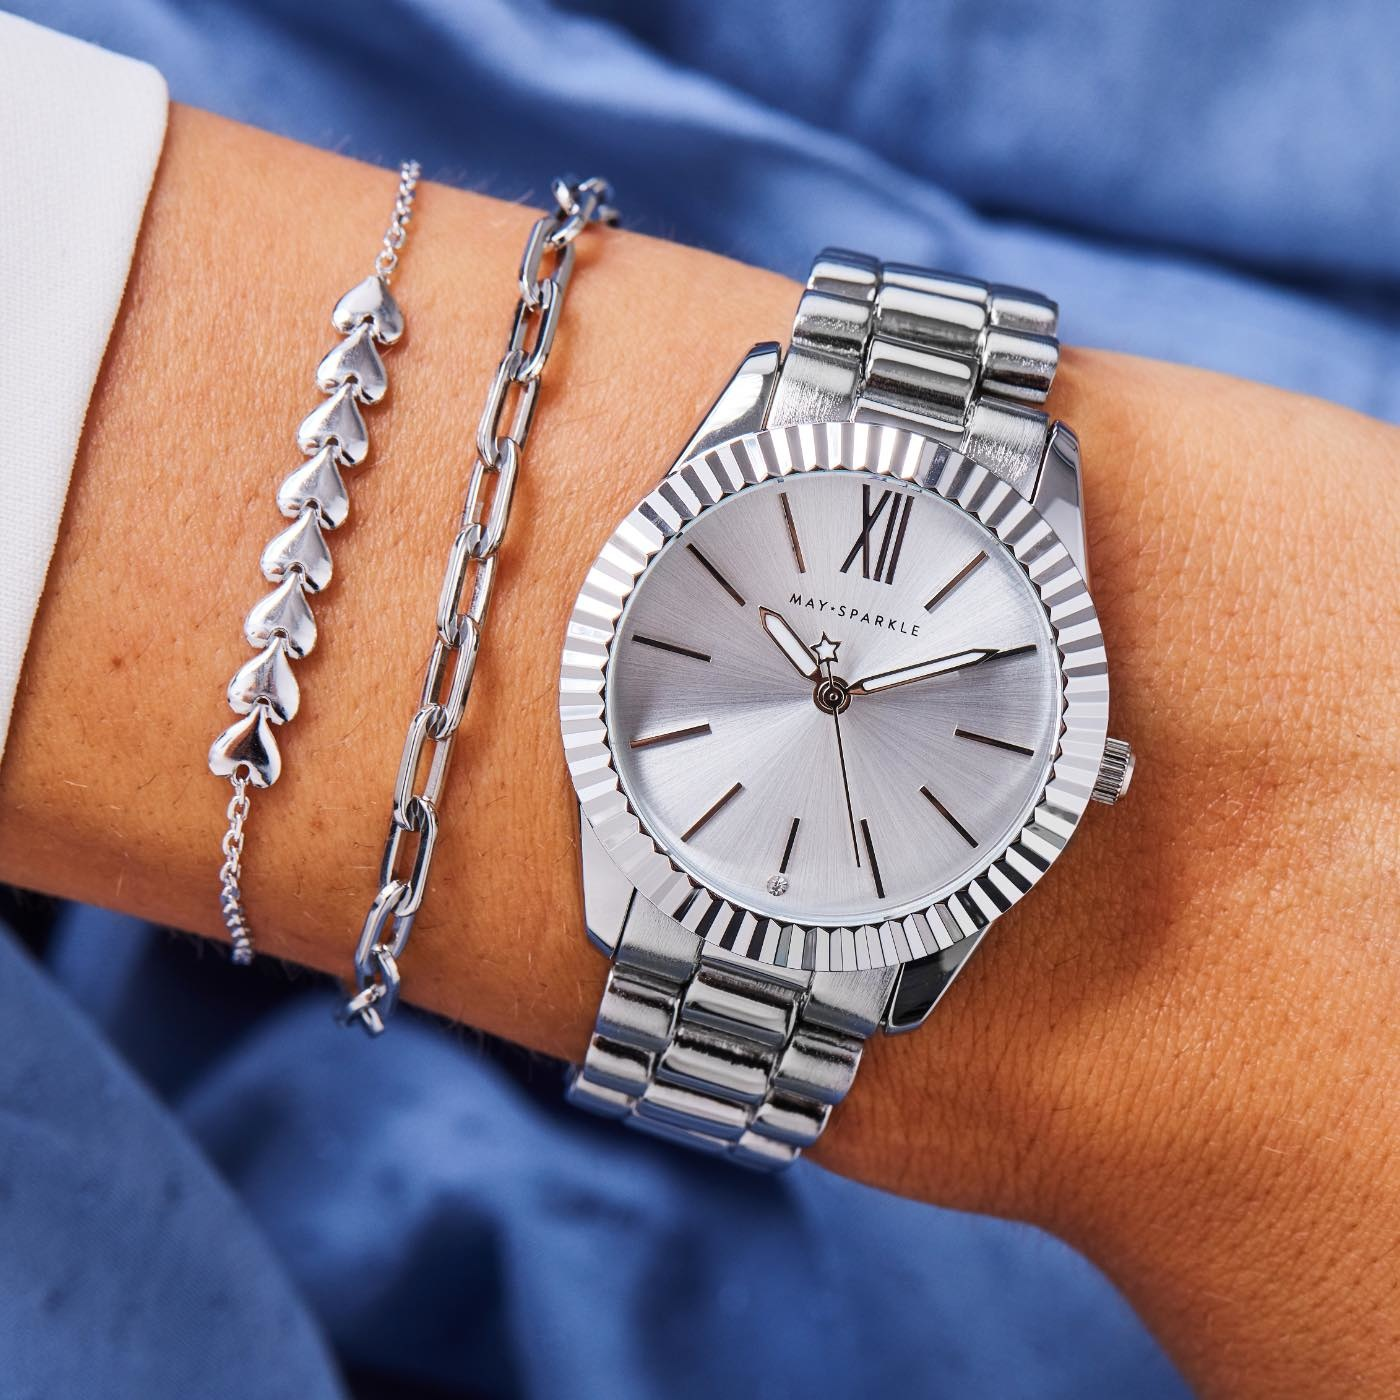 May Sparkle Luxurious Life ladies watch silver colored